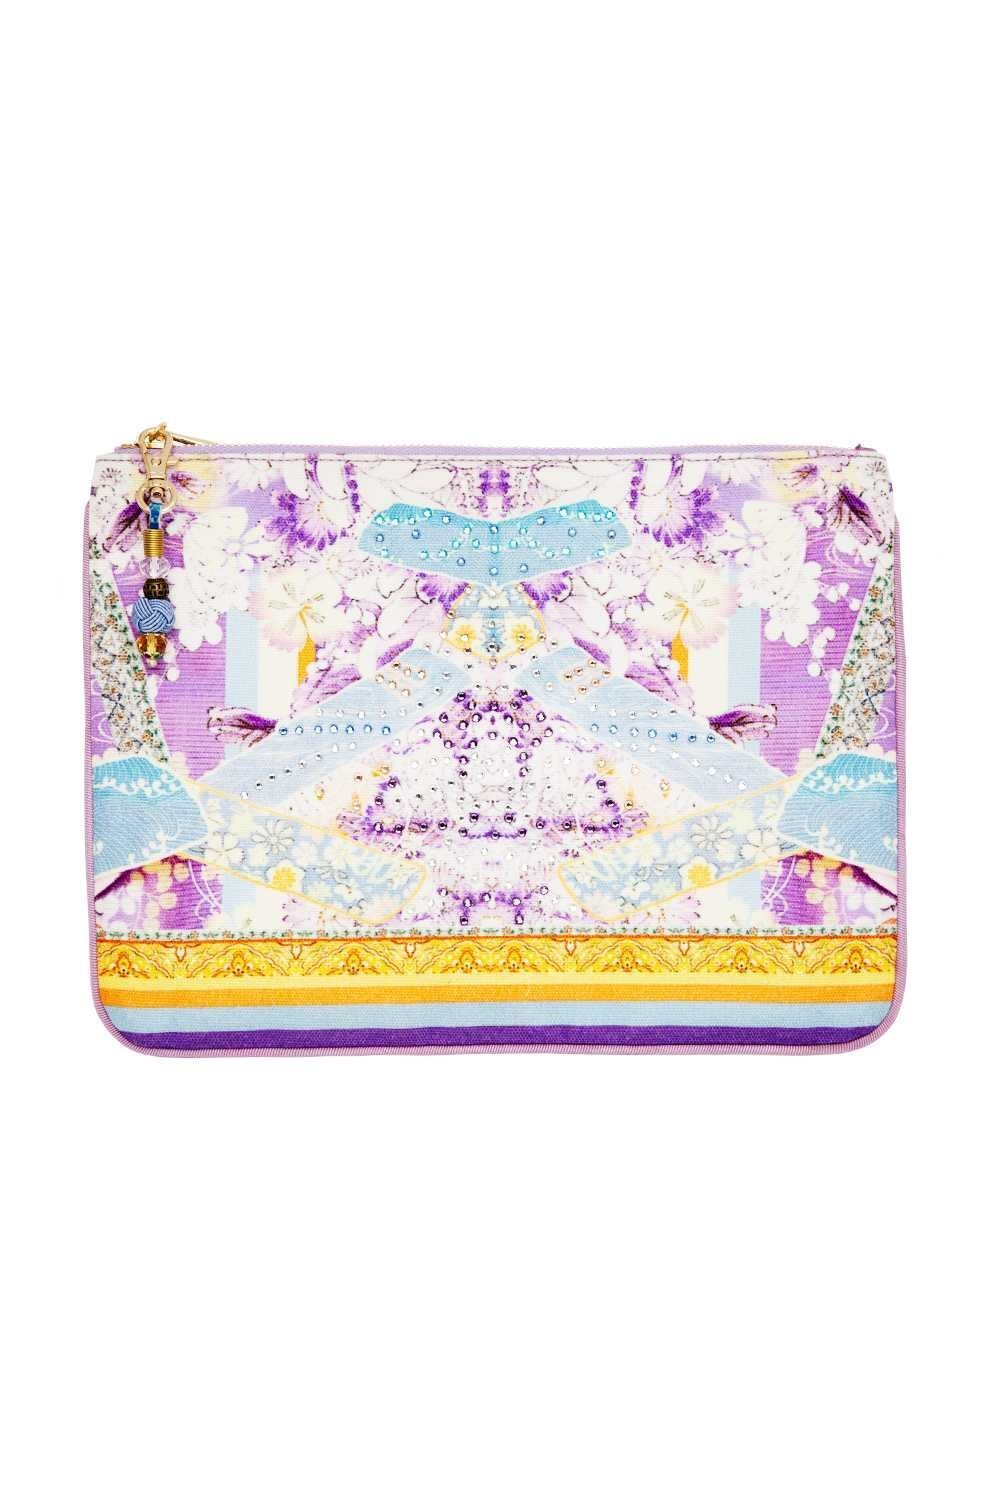 SMALL CANVAS CLUTCH GIRL IN THE KIMONO